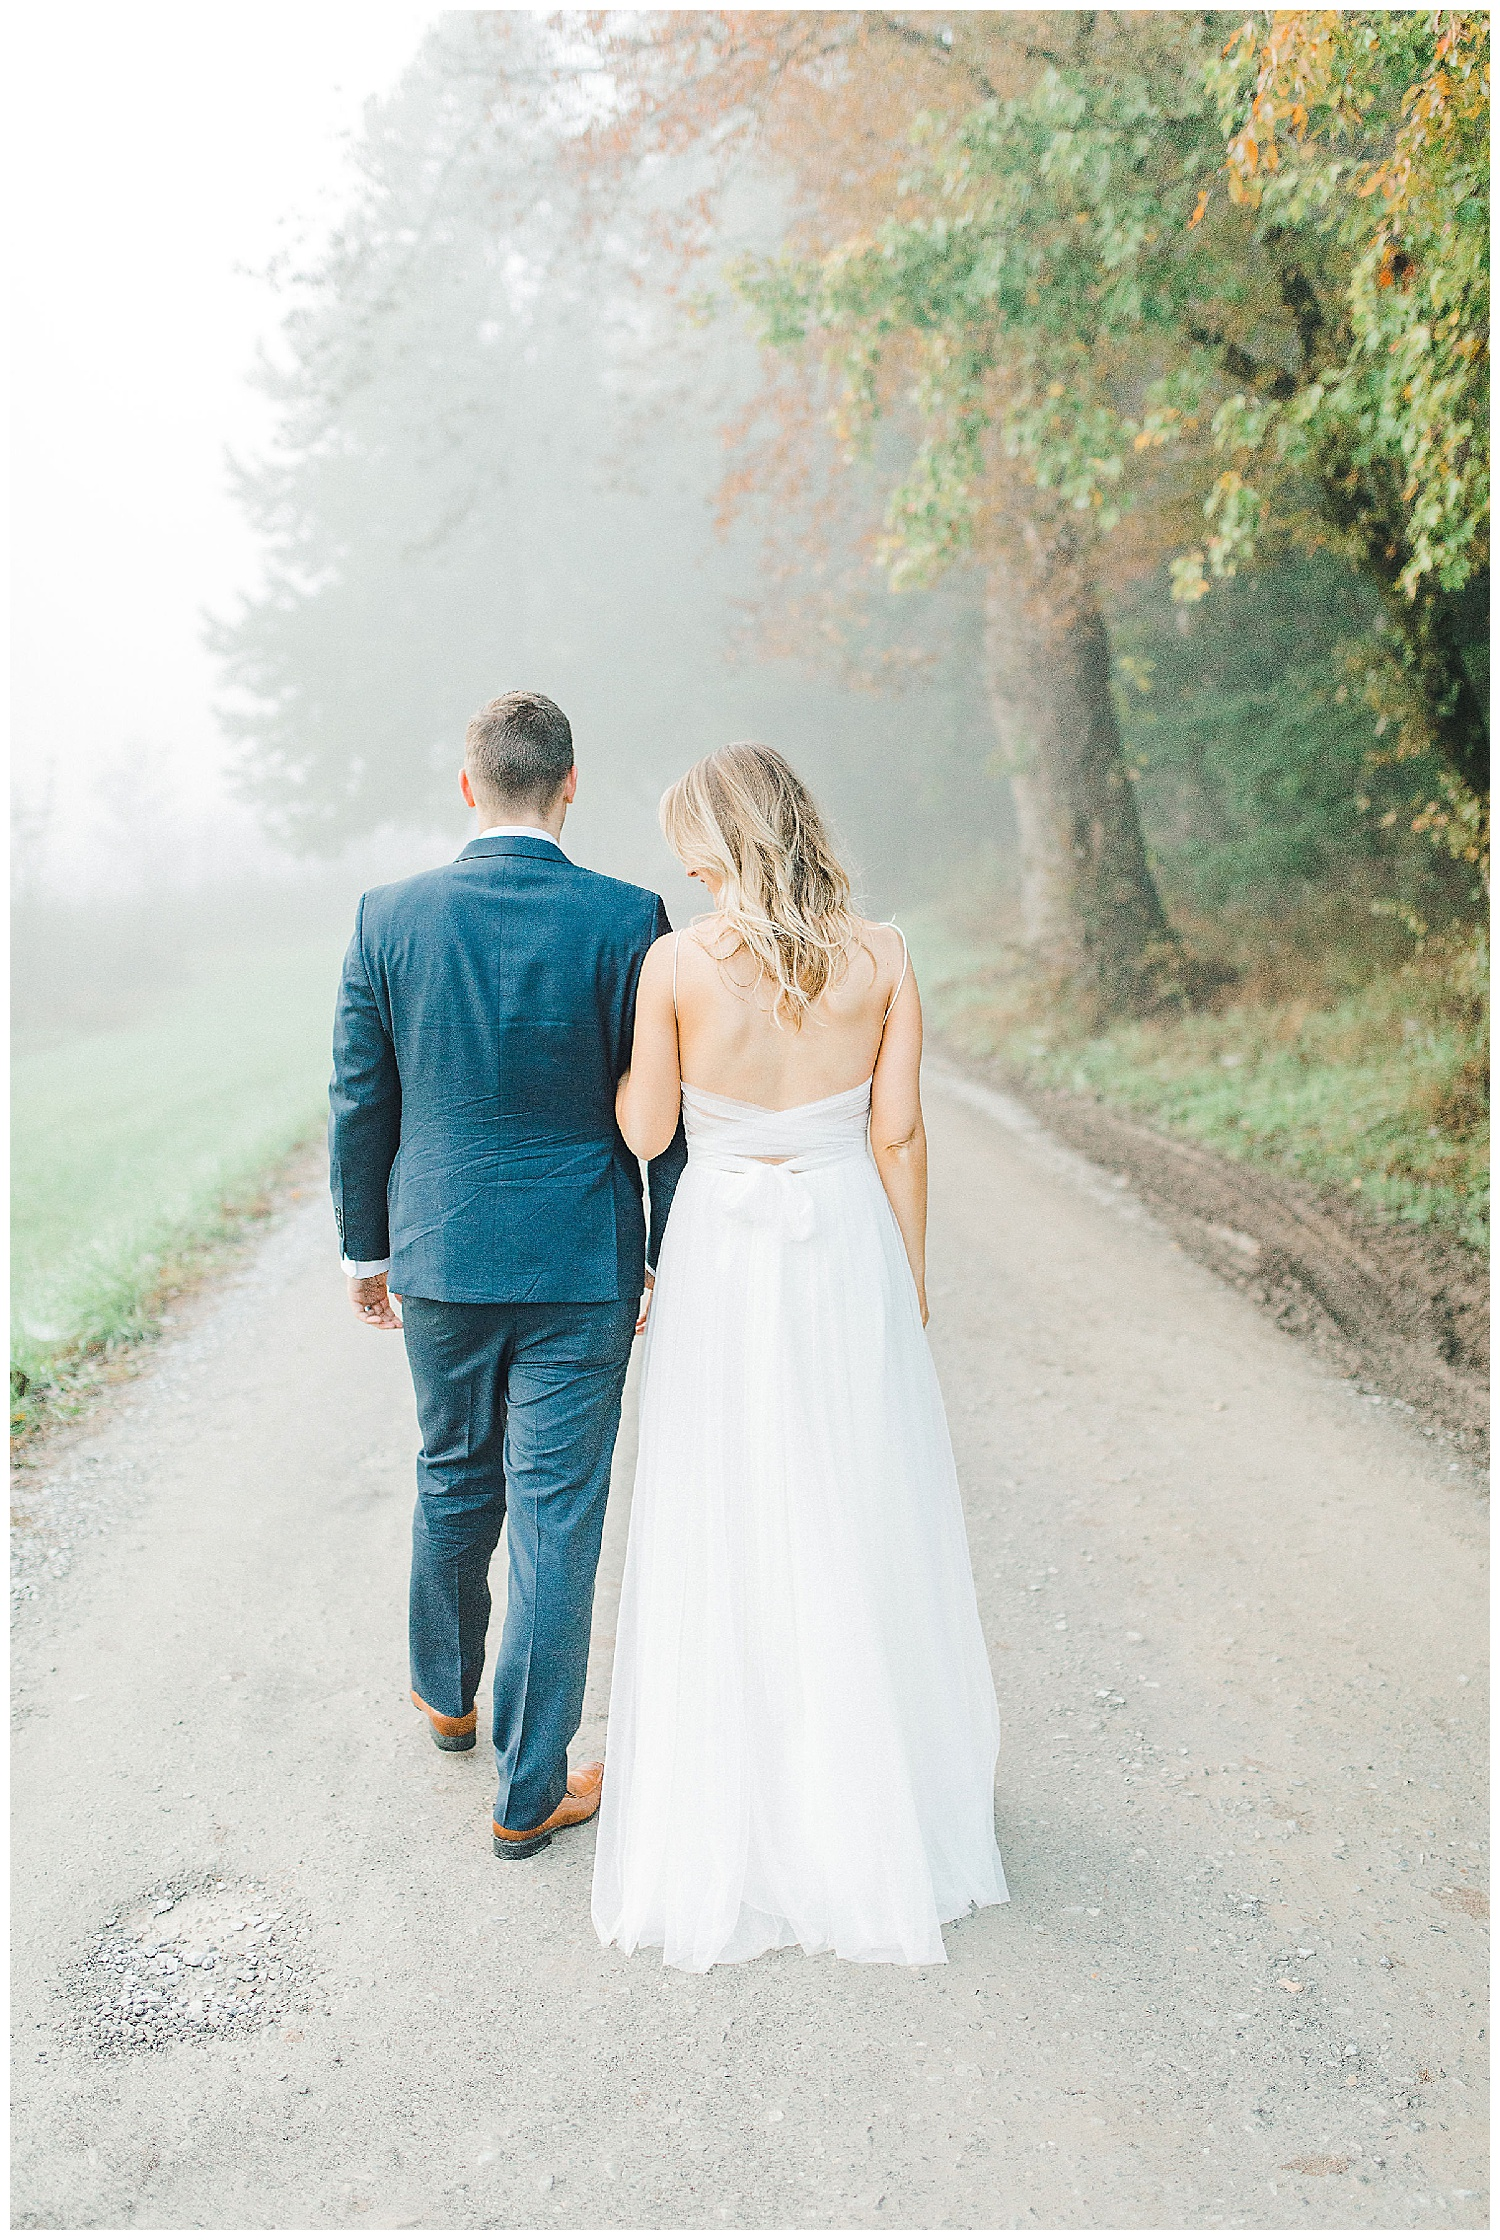 Emma Rose Company recently got to travel all the way to Nashville to photograph the most beautiful post-wedding bride and groom portraits in the Great Smoky Mountains with a gorgeous couple! Nashville wedding inspiration at it's finest._0018.jpg